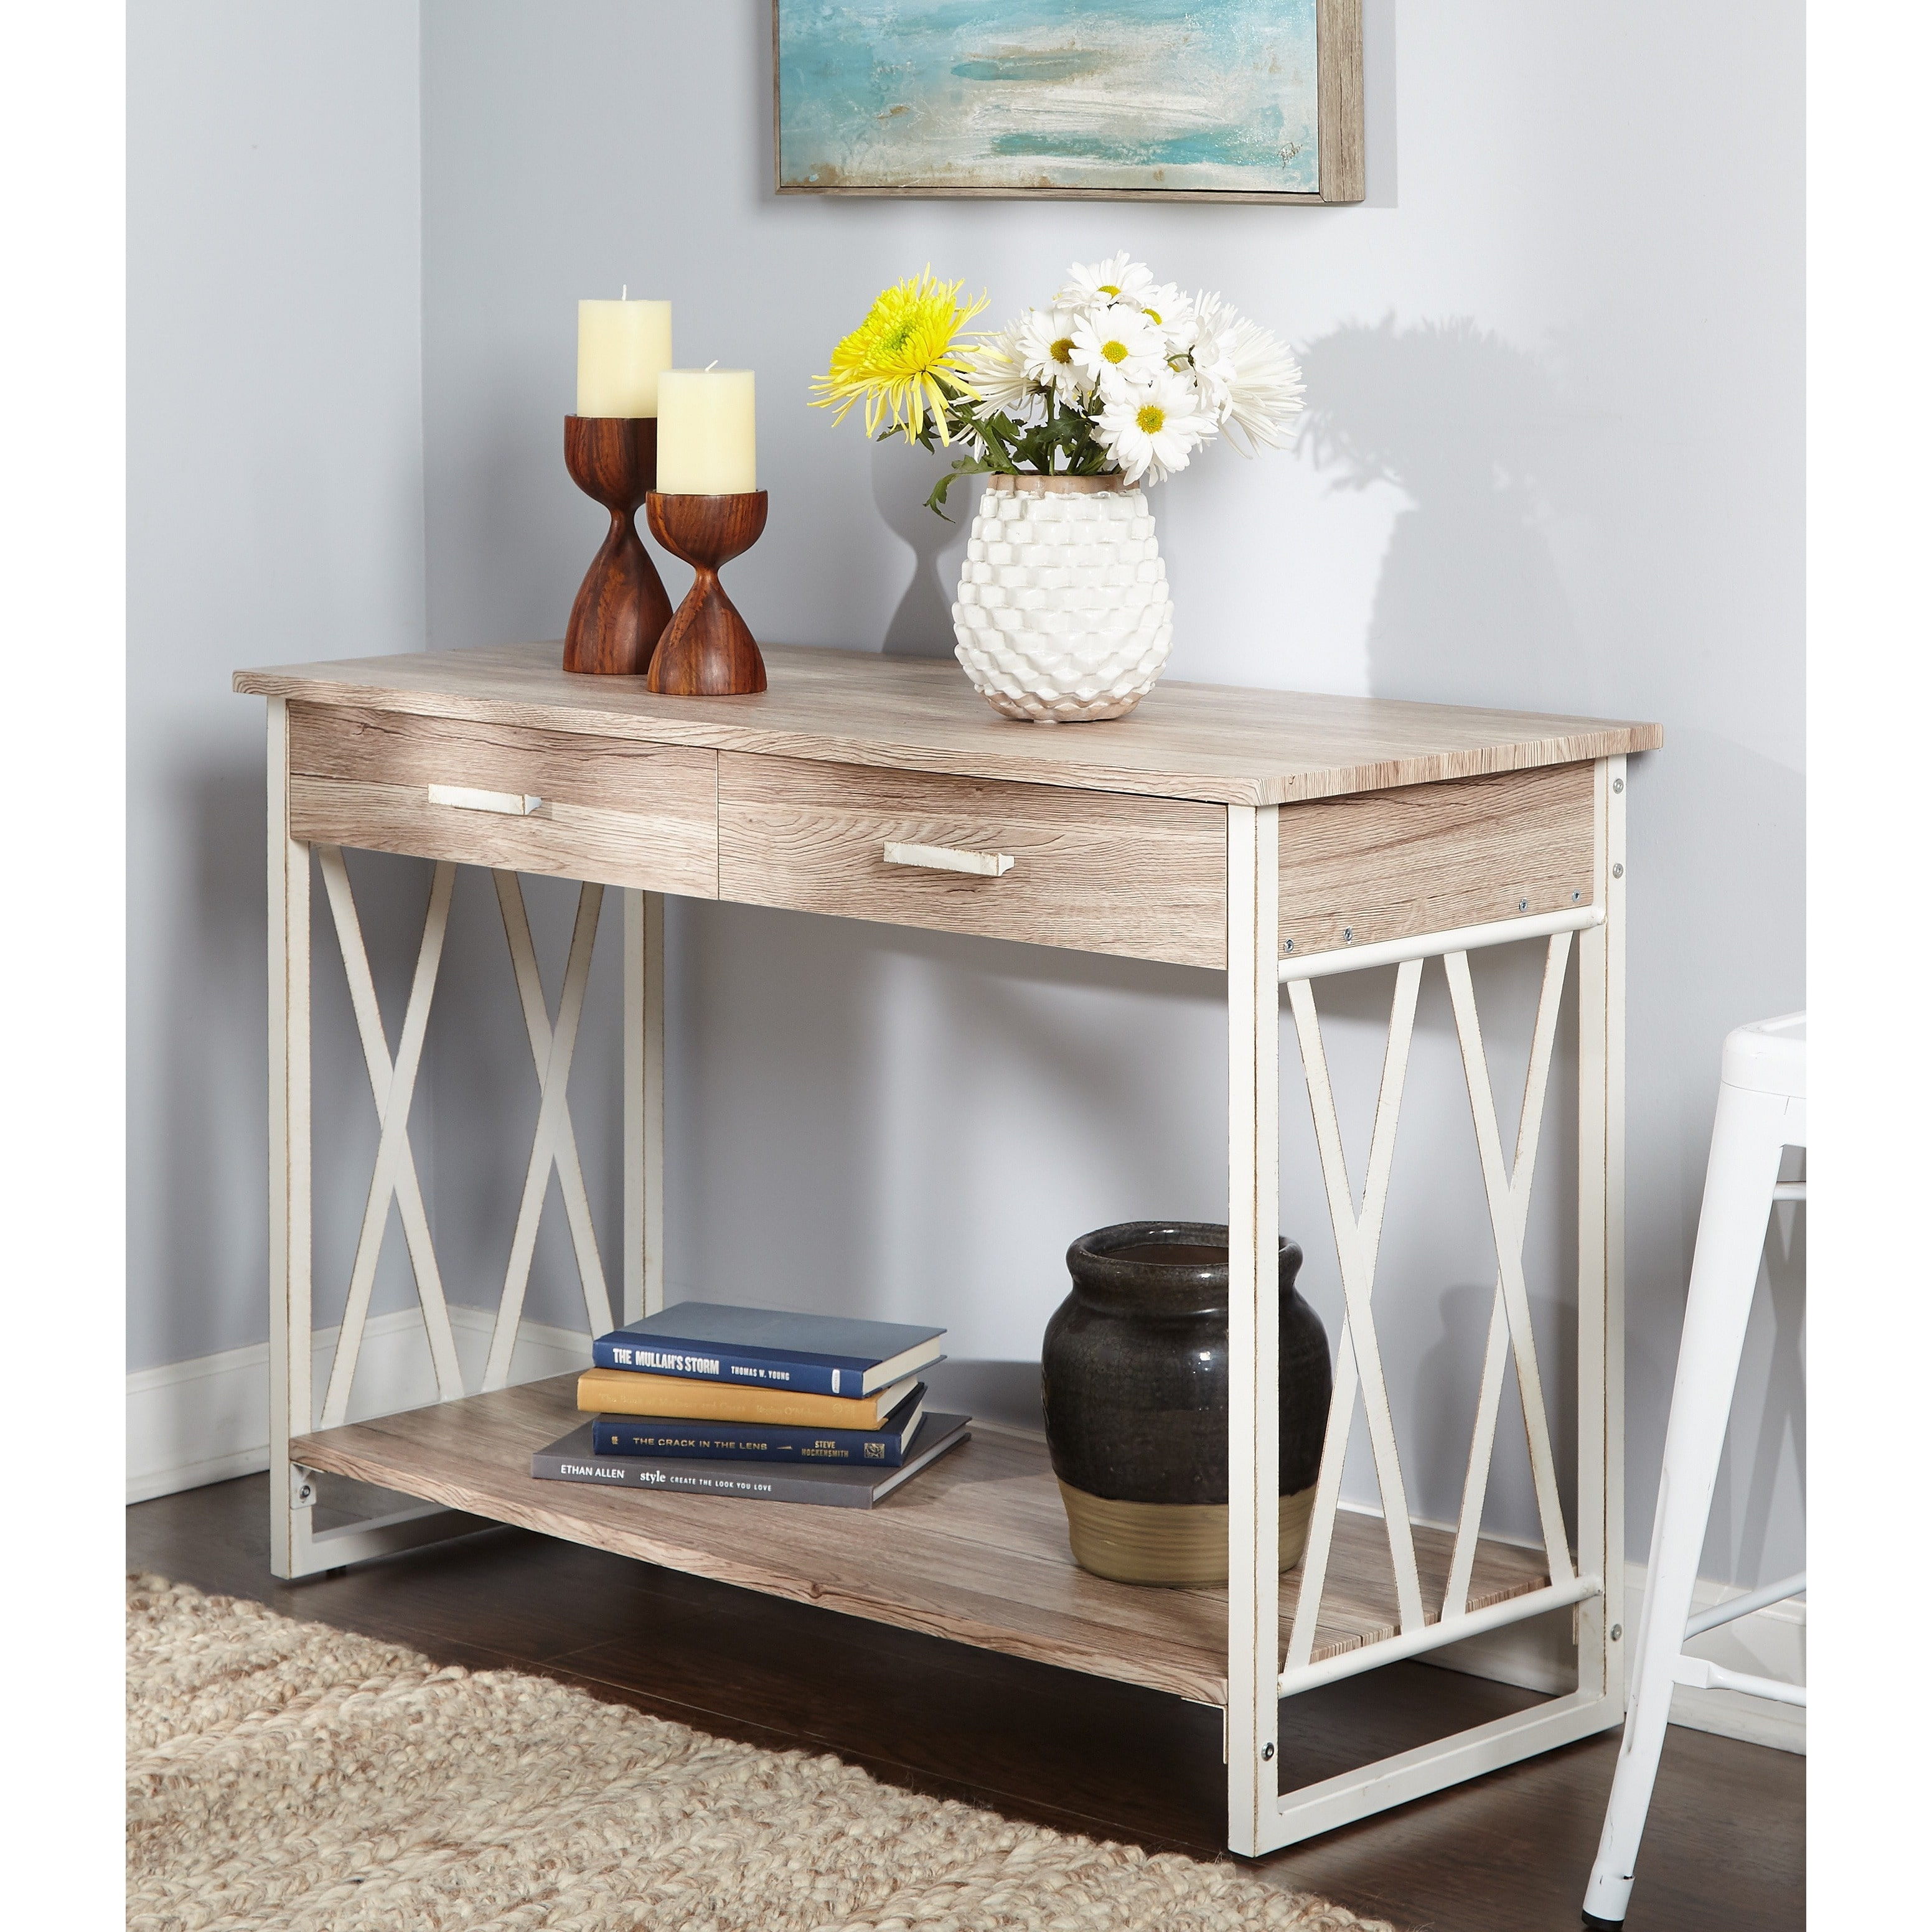 Jaxx Collection Sofa Table, Multiple Colors by Generic